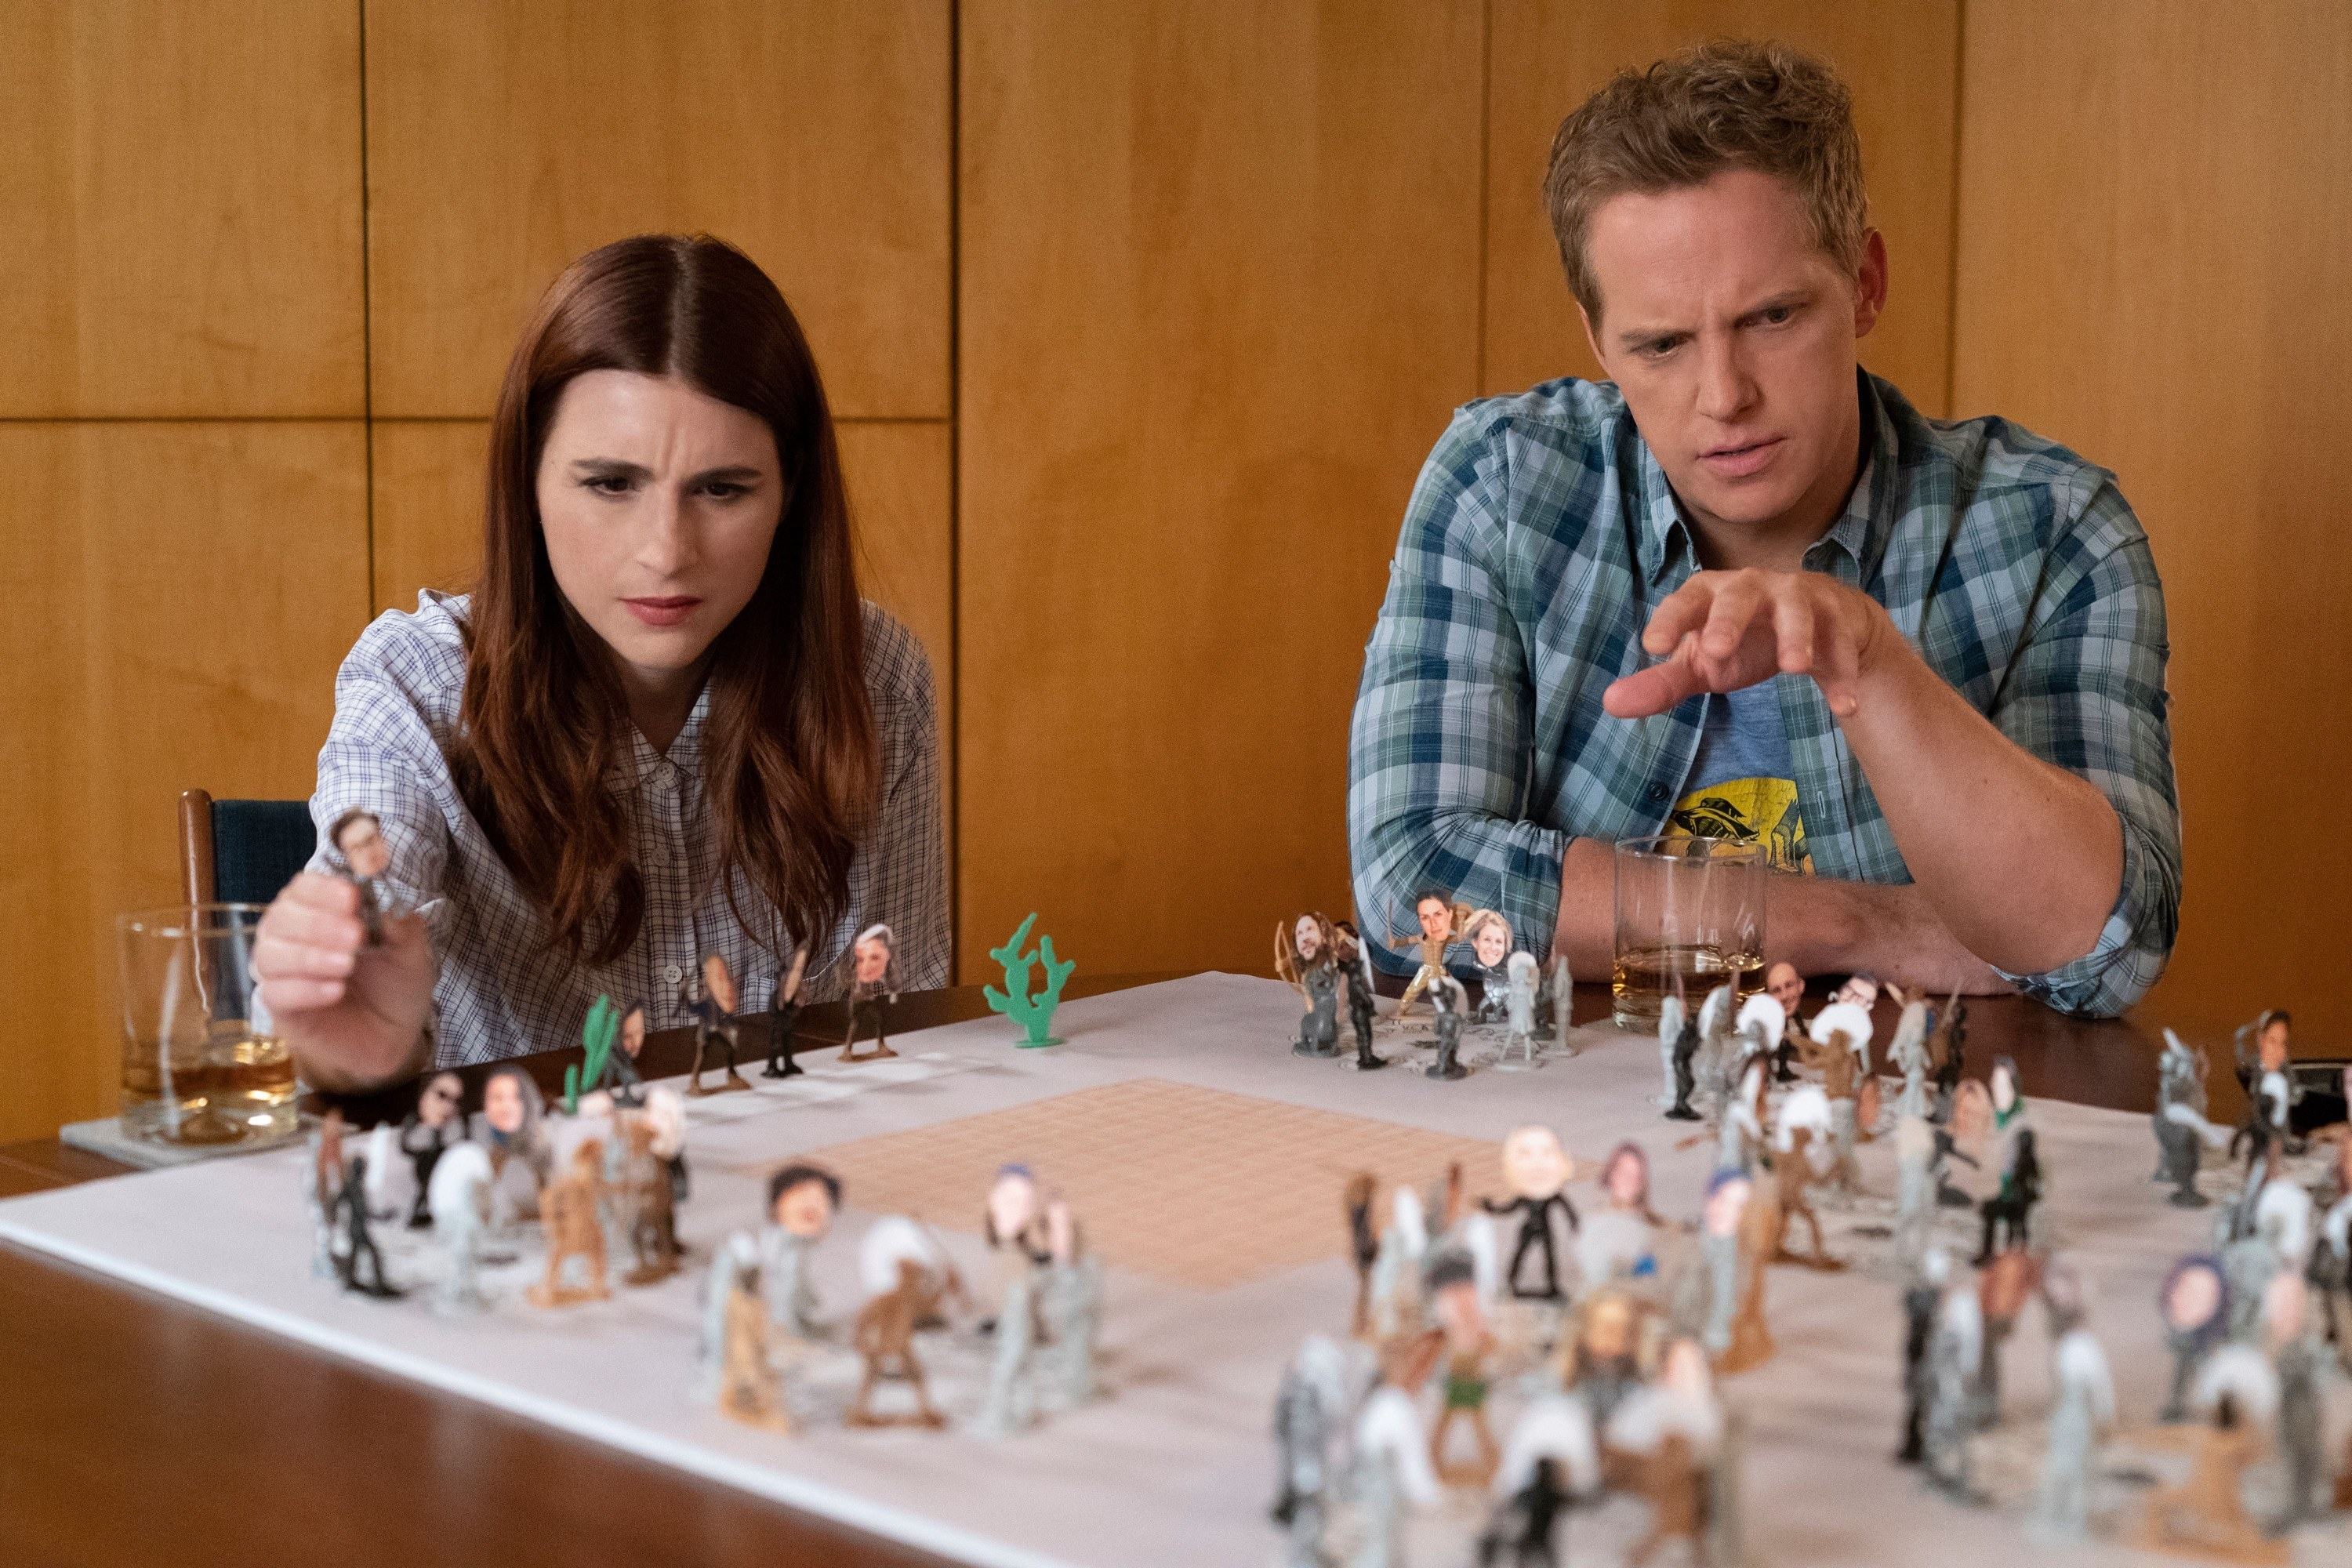 Aya Cash and Chris Geere looking intently at the table